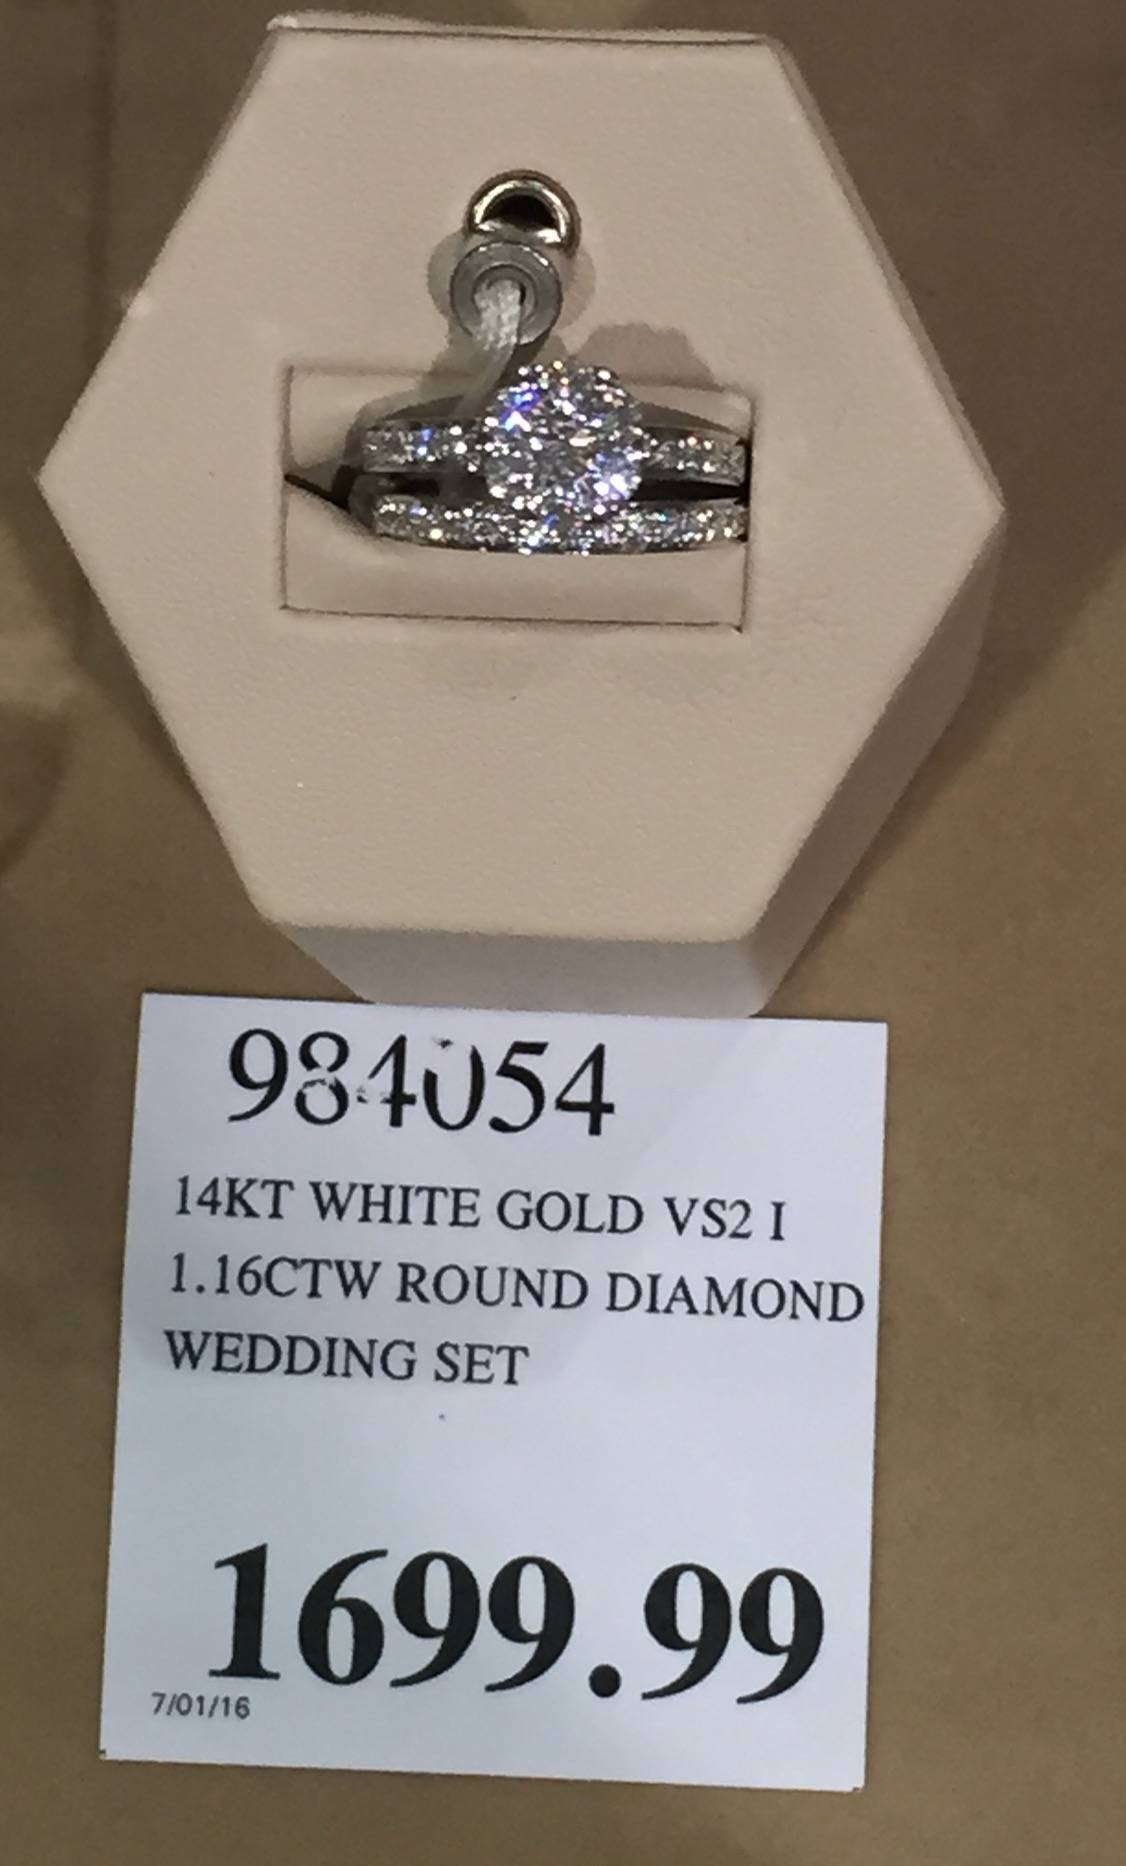 unforeseen diamond engagement ring costco tags engagement ring intended for costco diamond wedding rings - Costco Wedding Rings